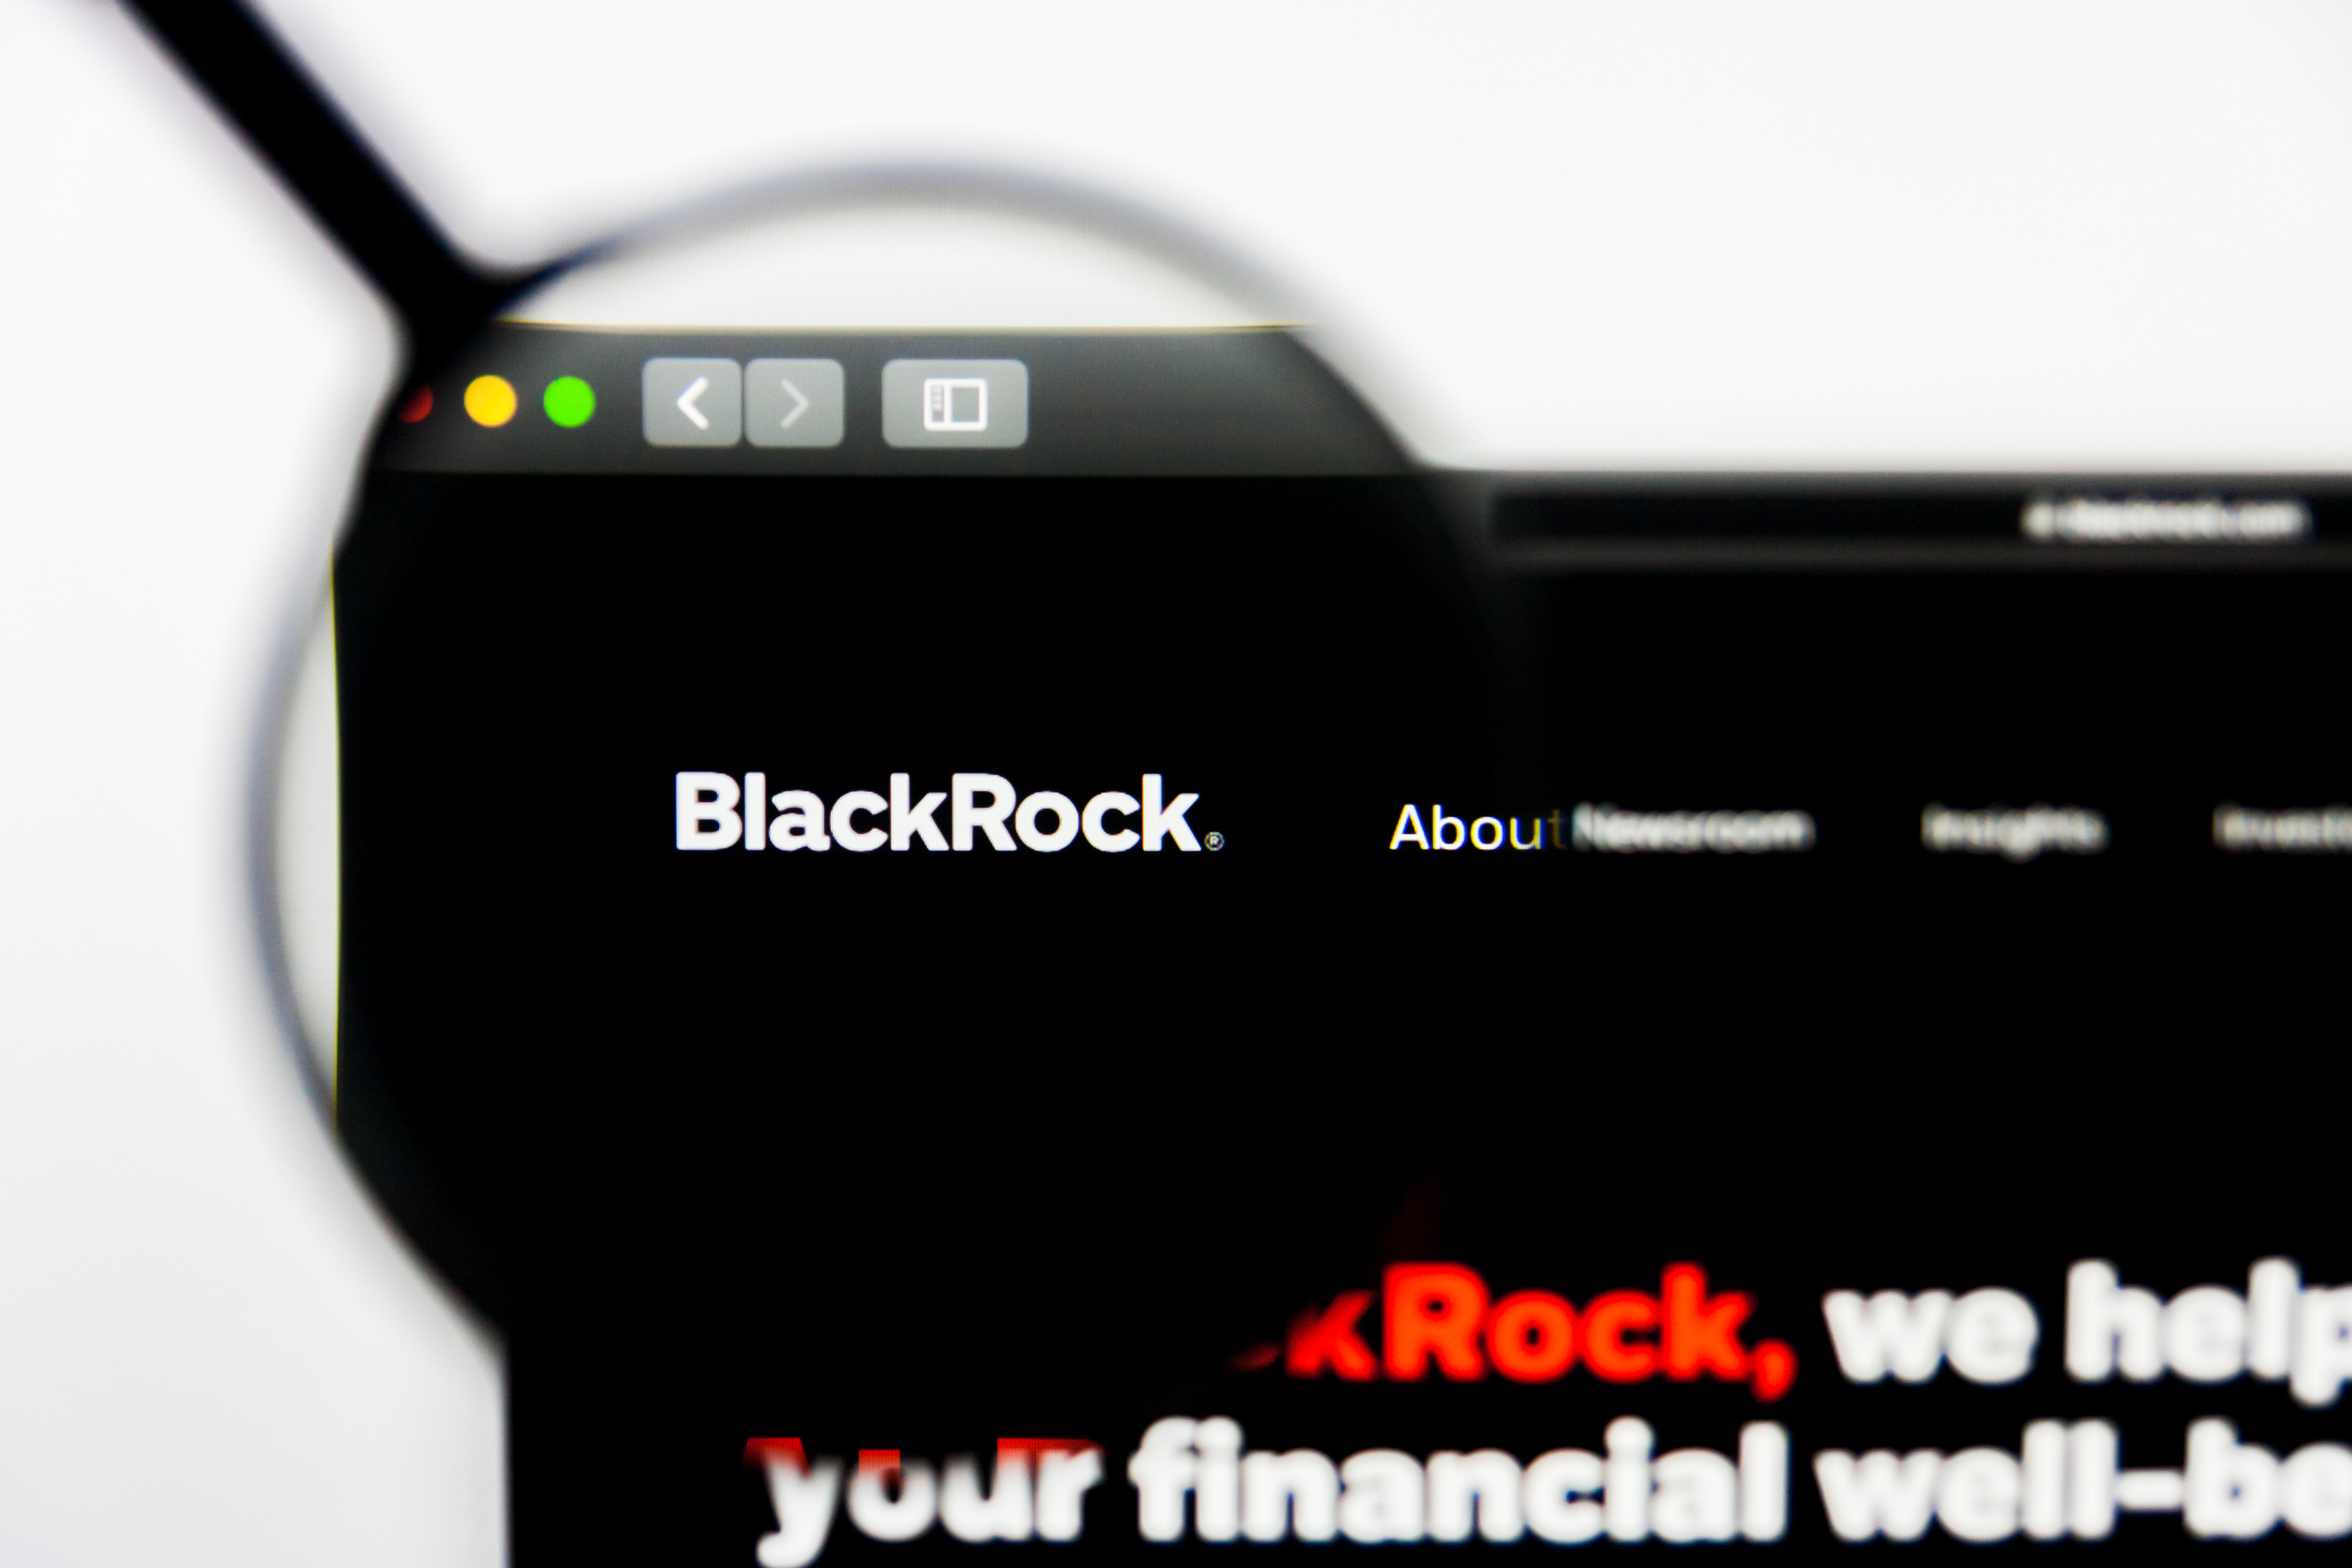 """Bitcoin Could Go Up """"Significantly,"""" Says Blackrock's Managing Director"""